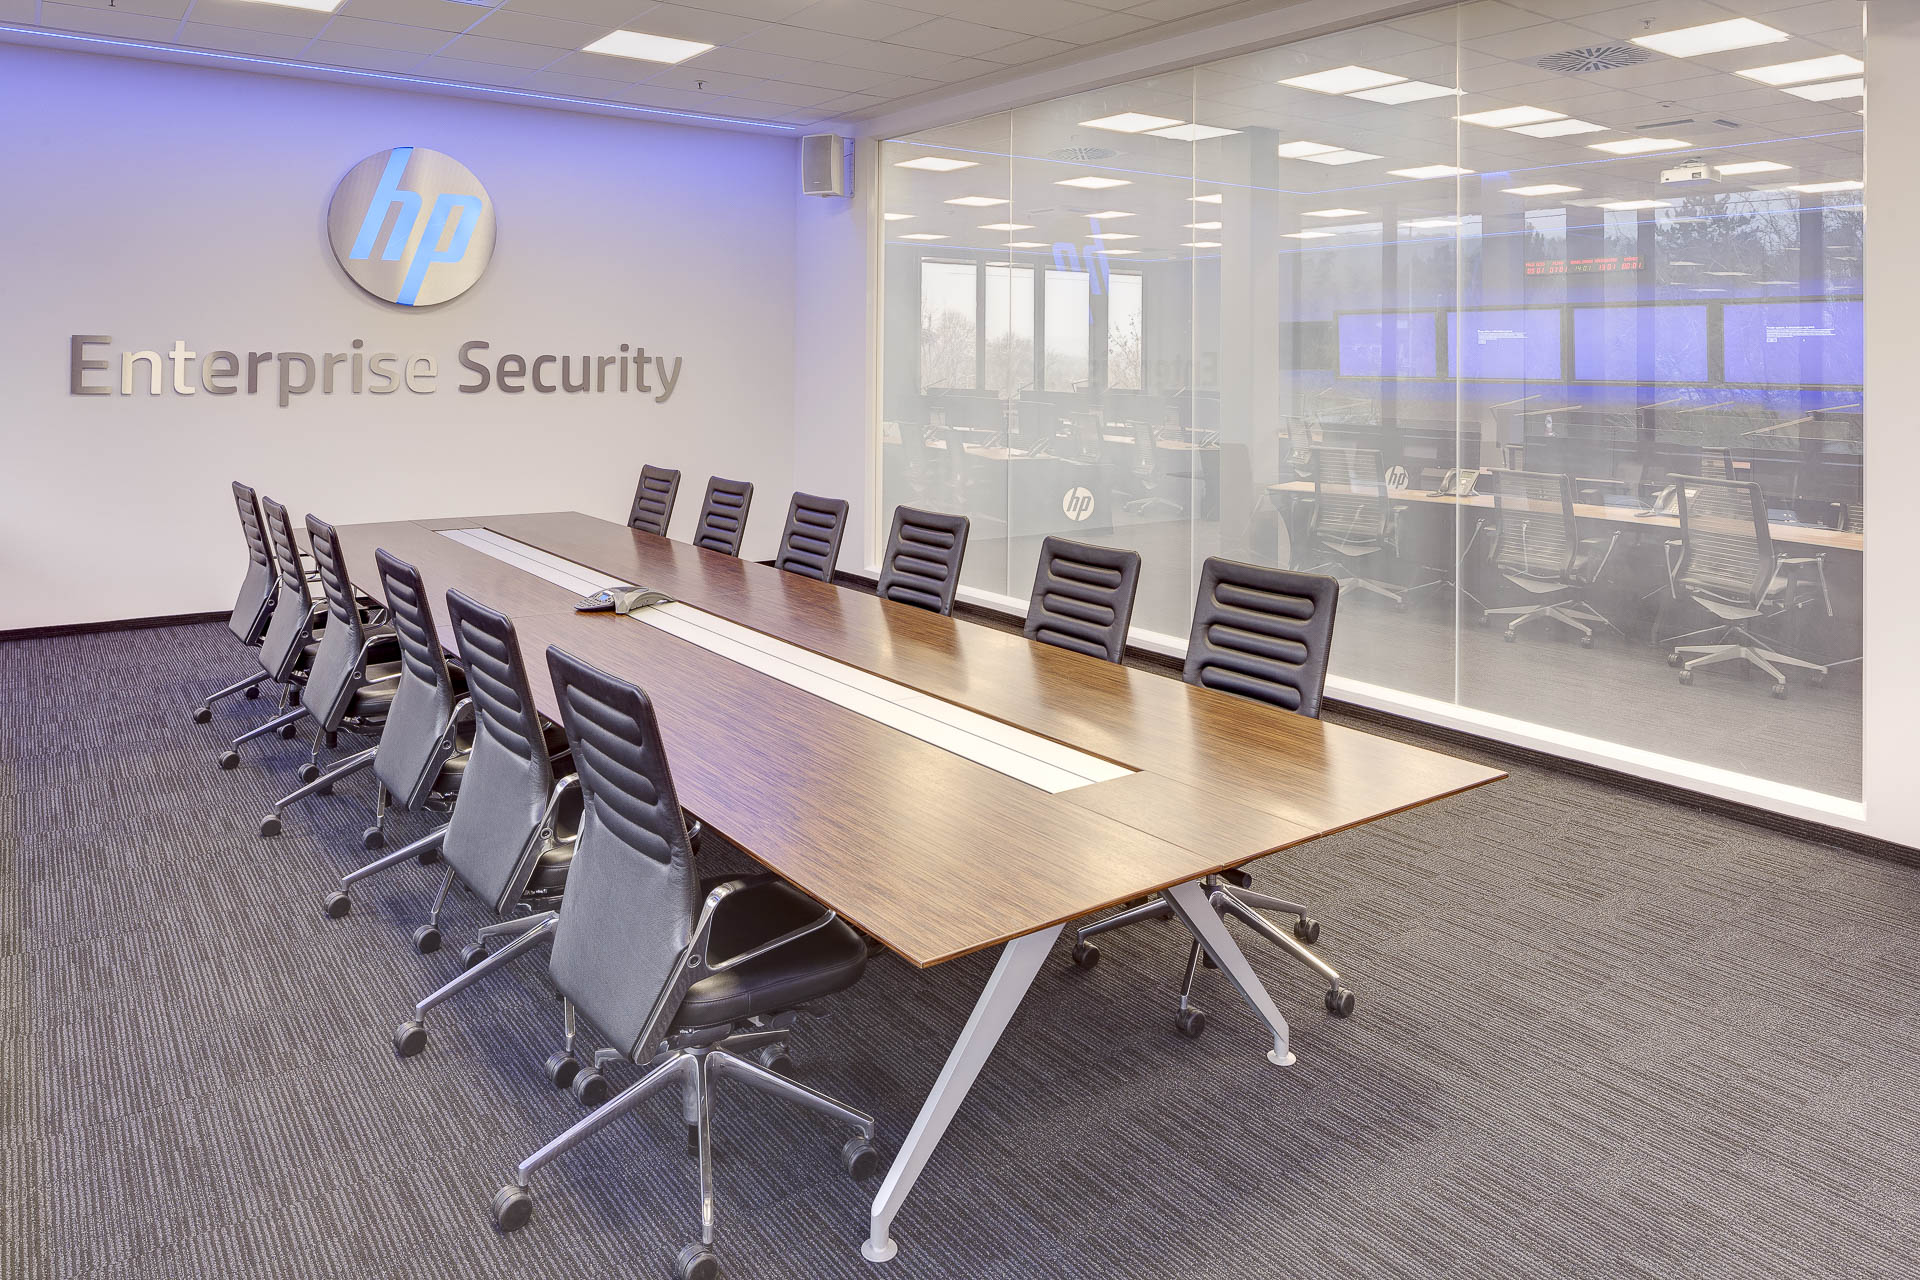 HP Enterprise Security Center